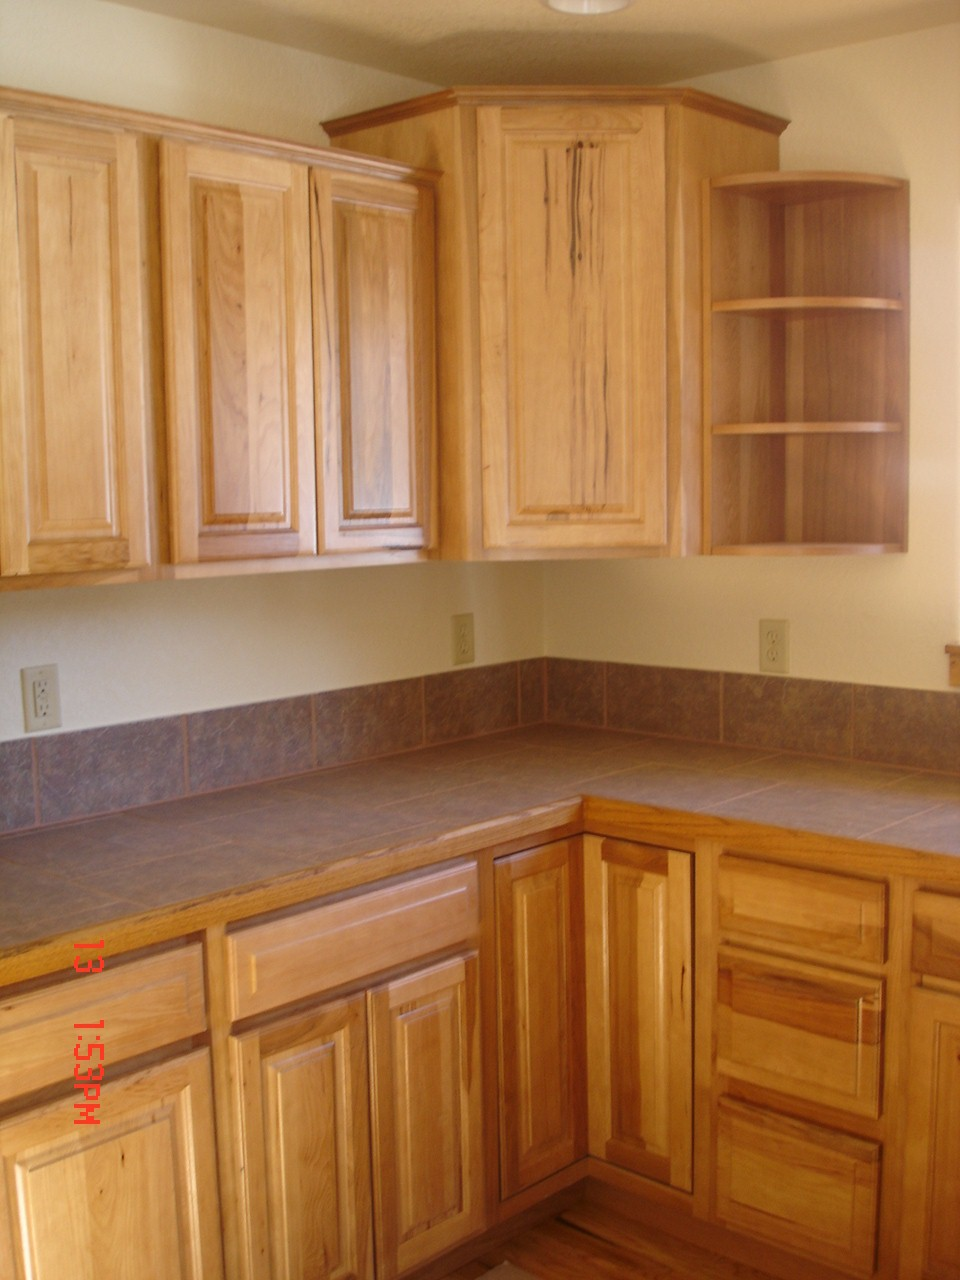 photo photoid cabinets kitchen Kitchen cabinets